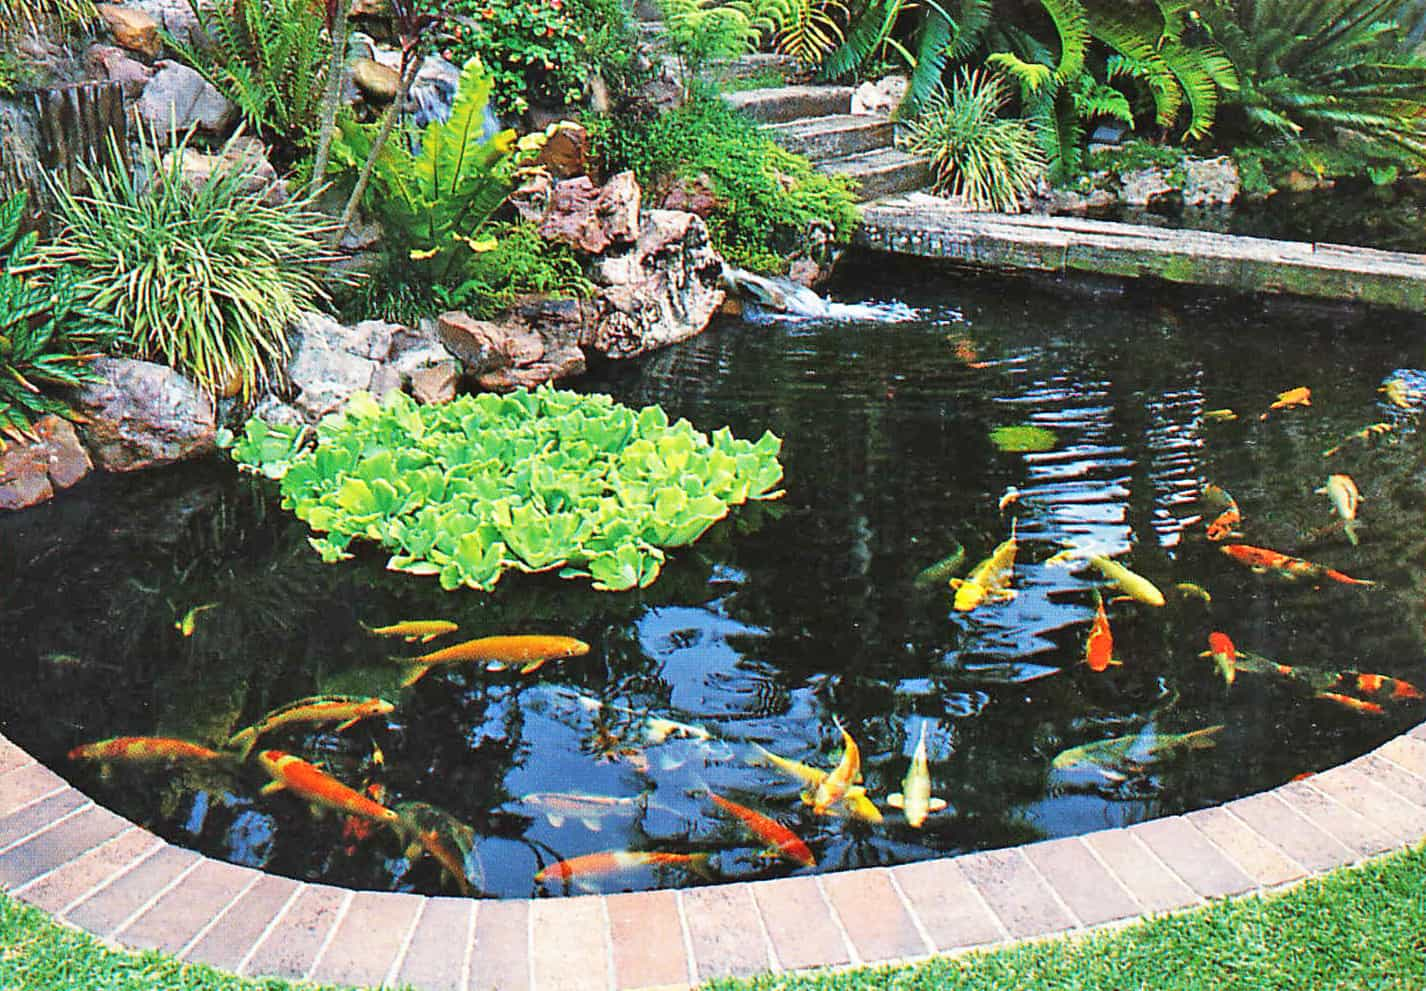 koi pond with water lettuce